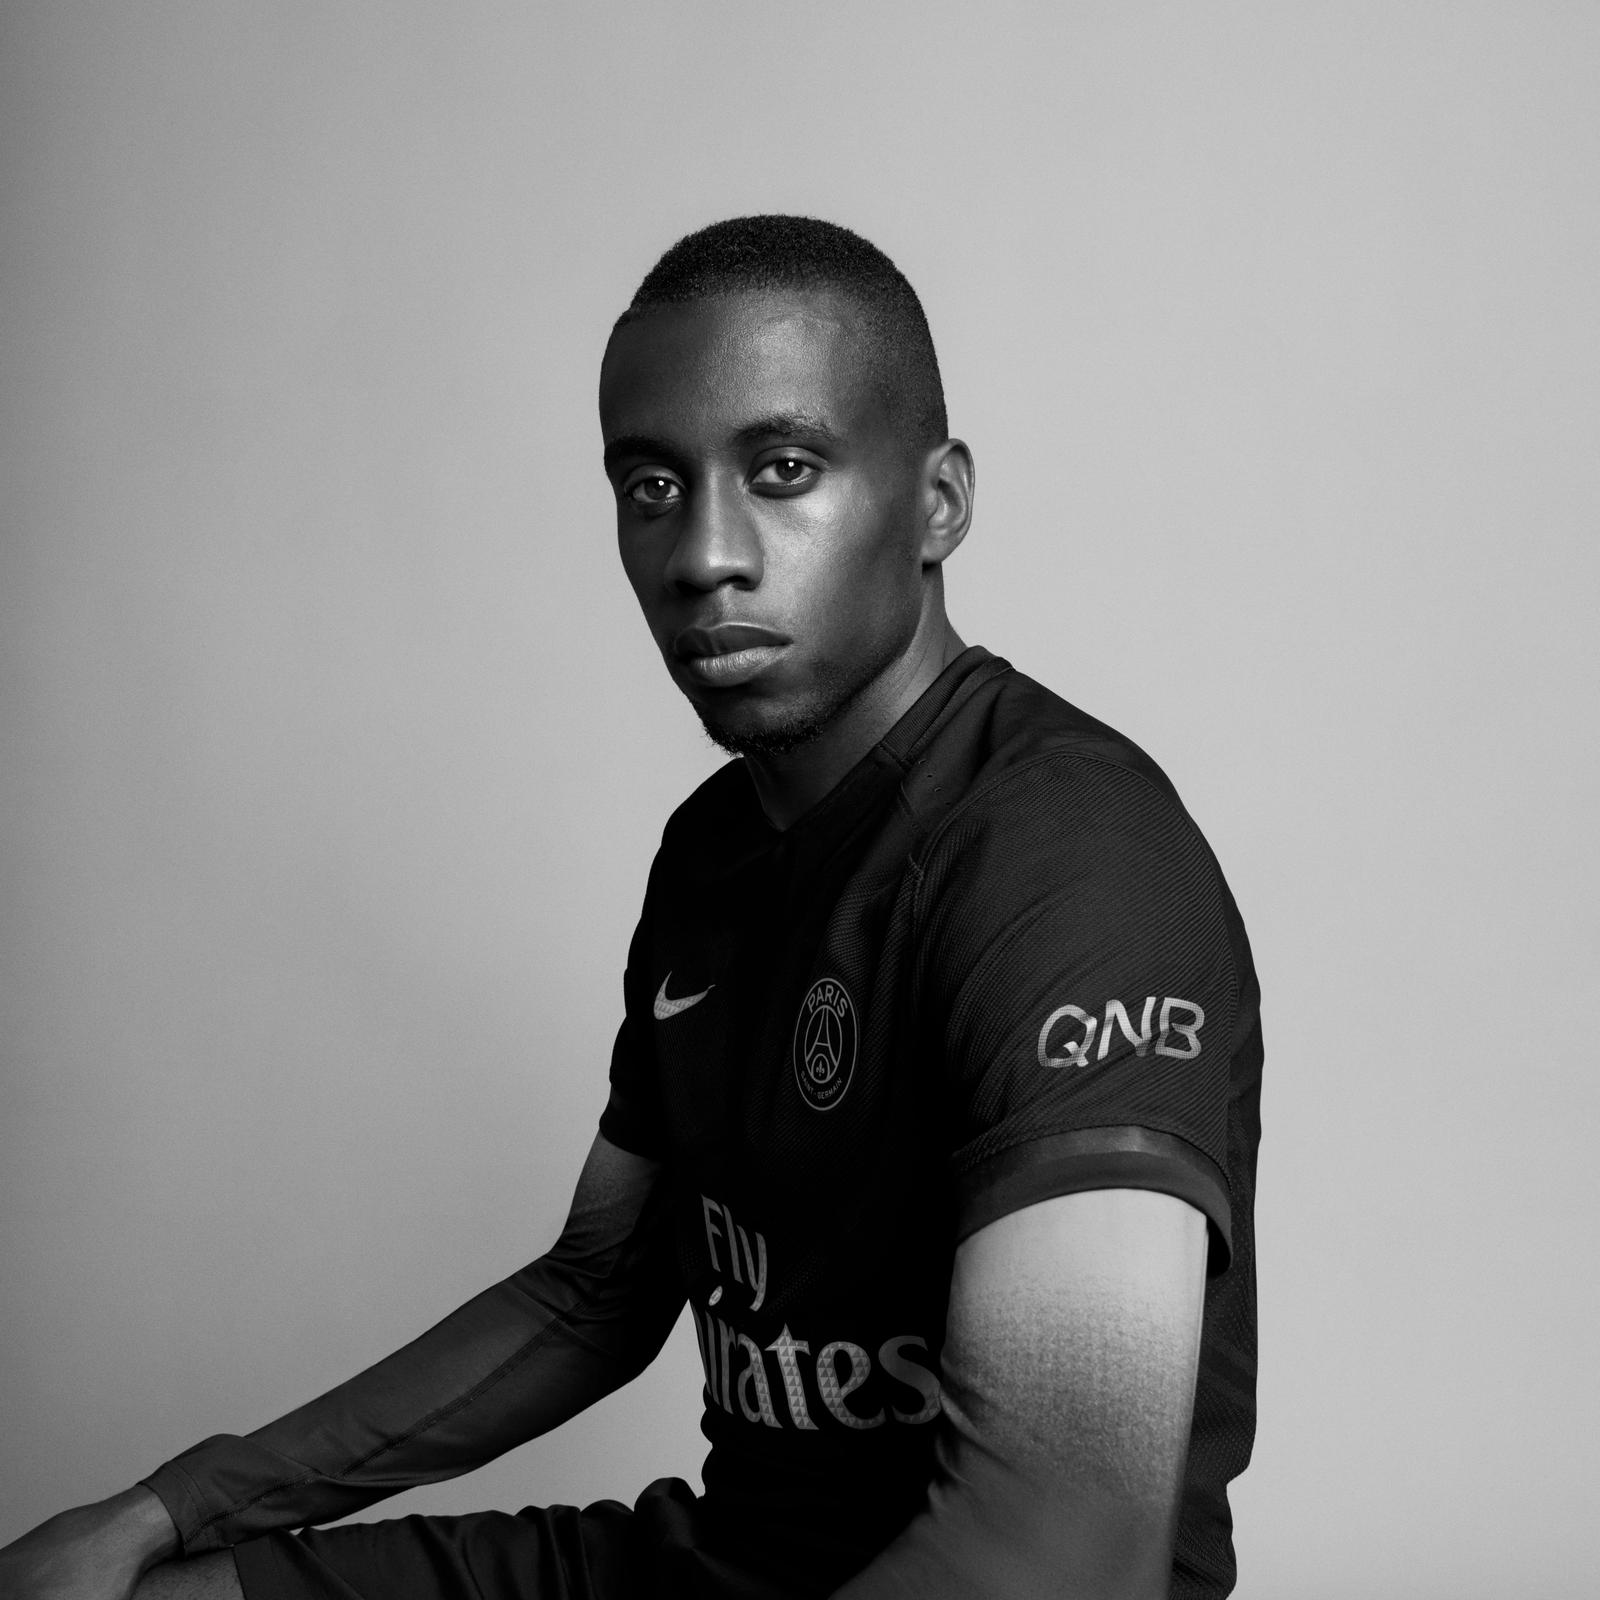 PSG_DarkLight-Matuidi01-0027_original1